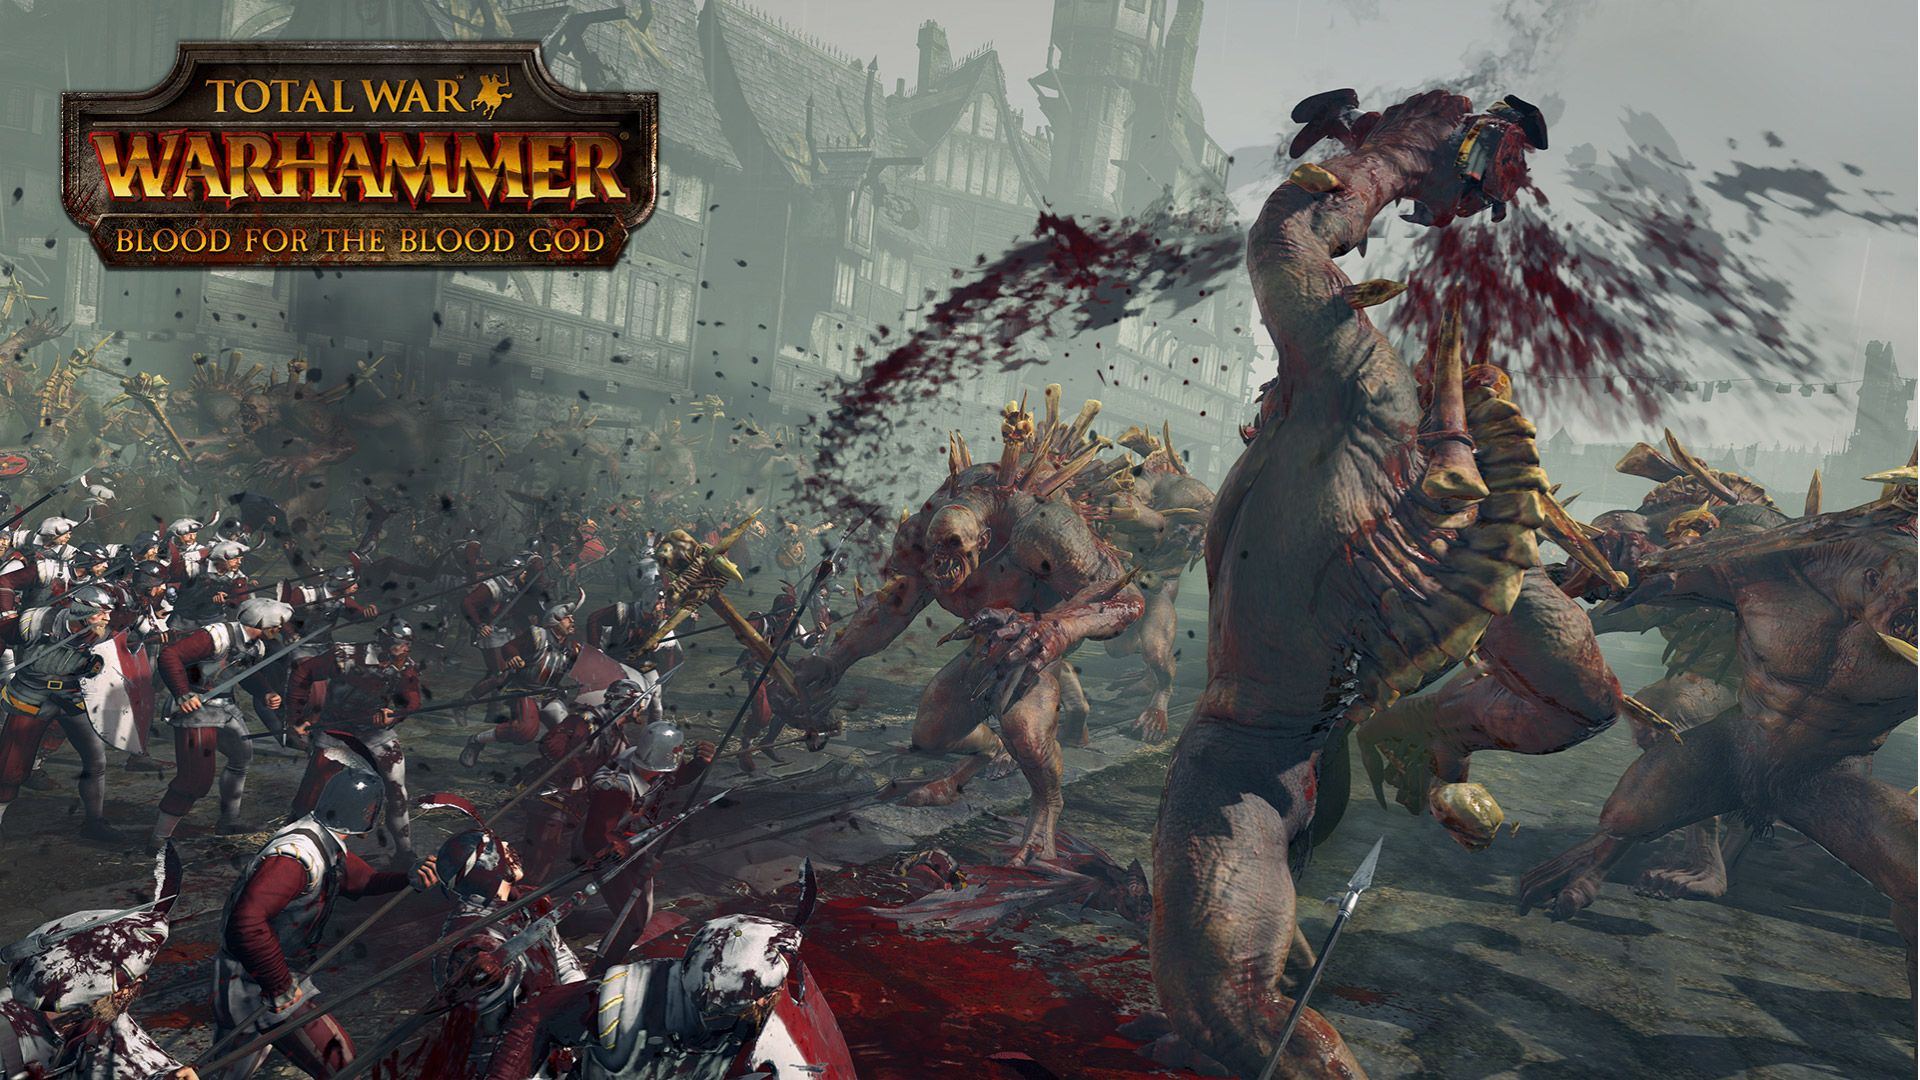 Total War Warhammer 2 Wallpaper 1920x1080 posted by Sarah Anderson